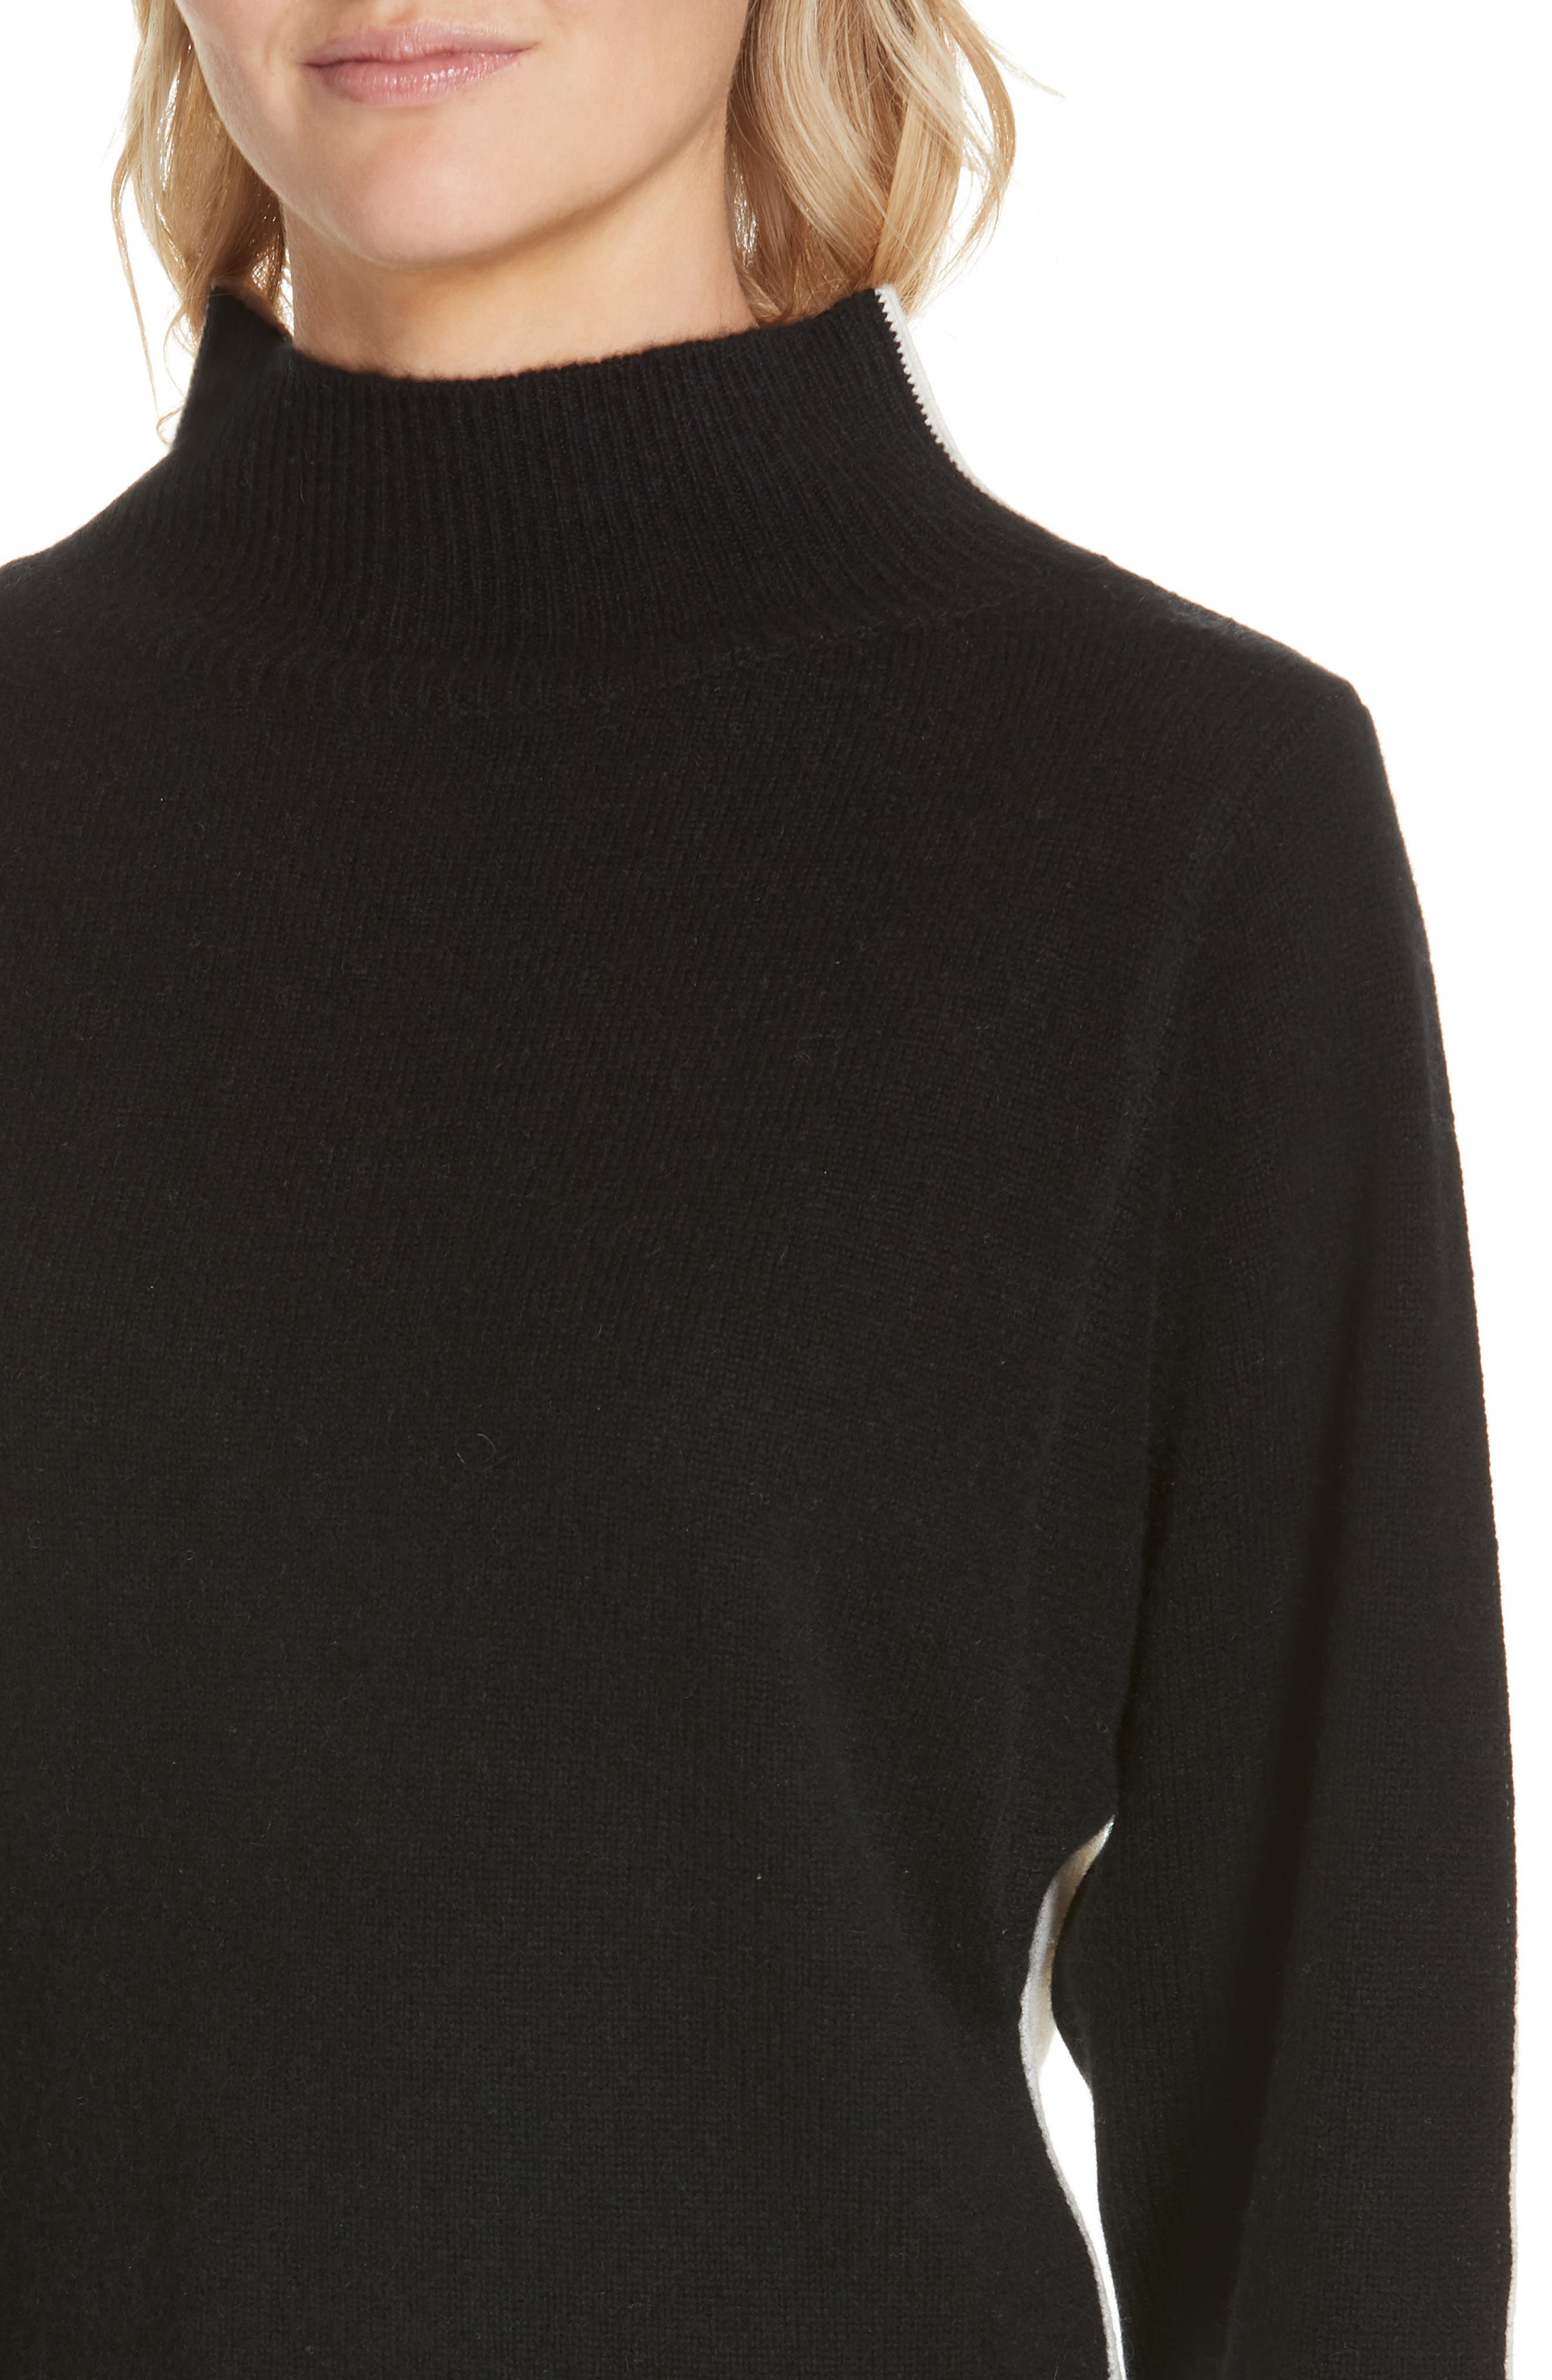 NORDSTROM SIGNATURE, Colorblock Cashmere Sweater, Alternate thumbnail 4, color, BLACK- IVORY COMBO